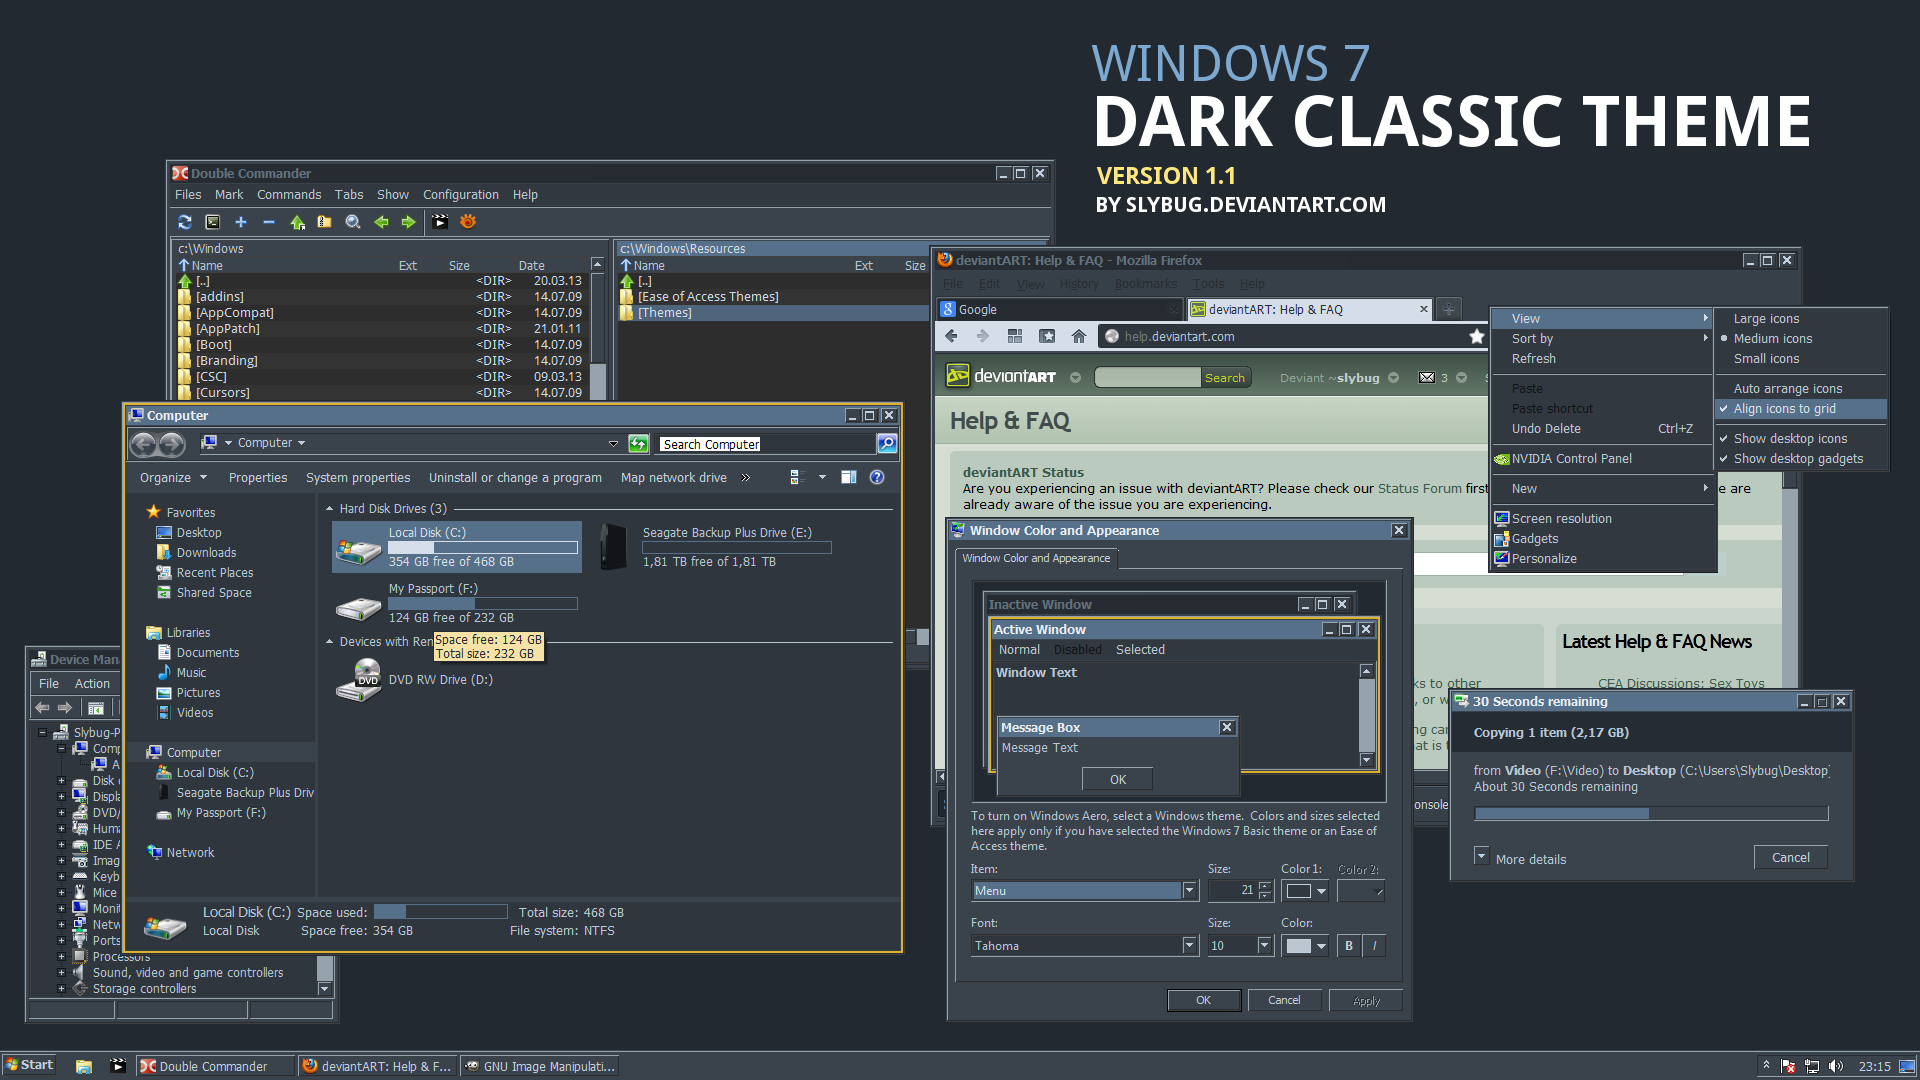 [����] Dark Classic Theme [ Windows 7 / 2013 ]